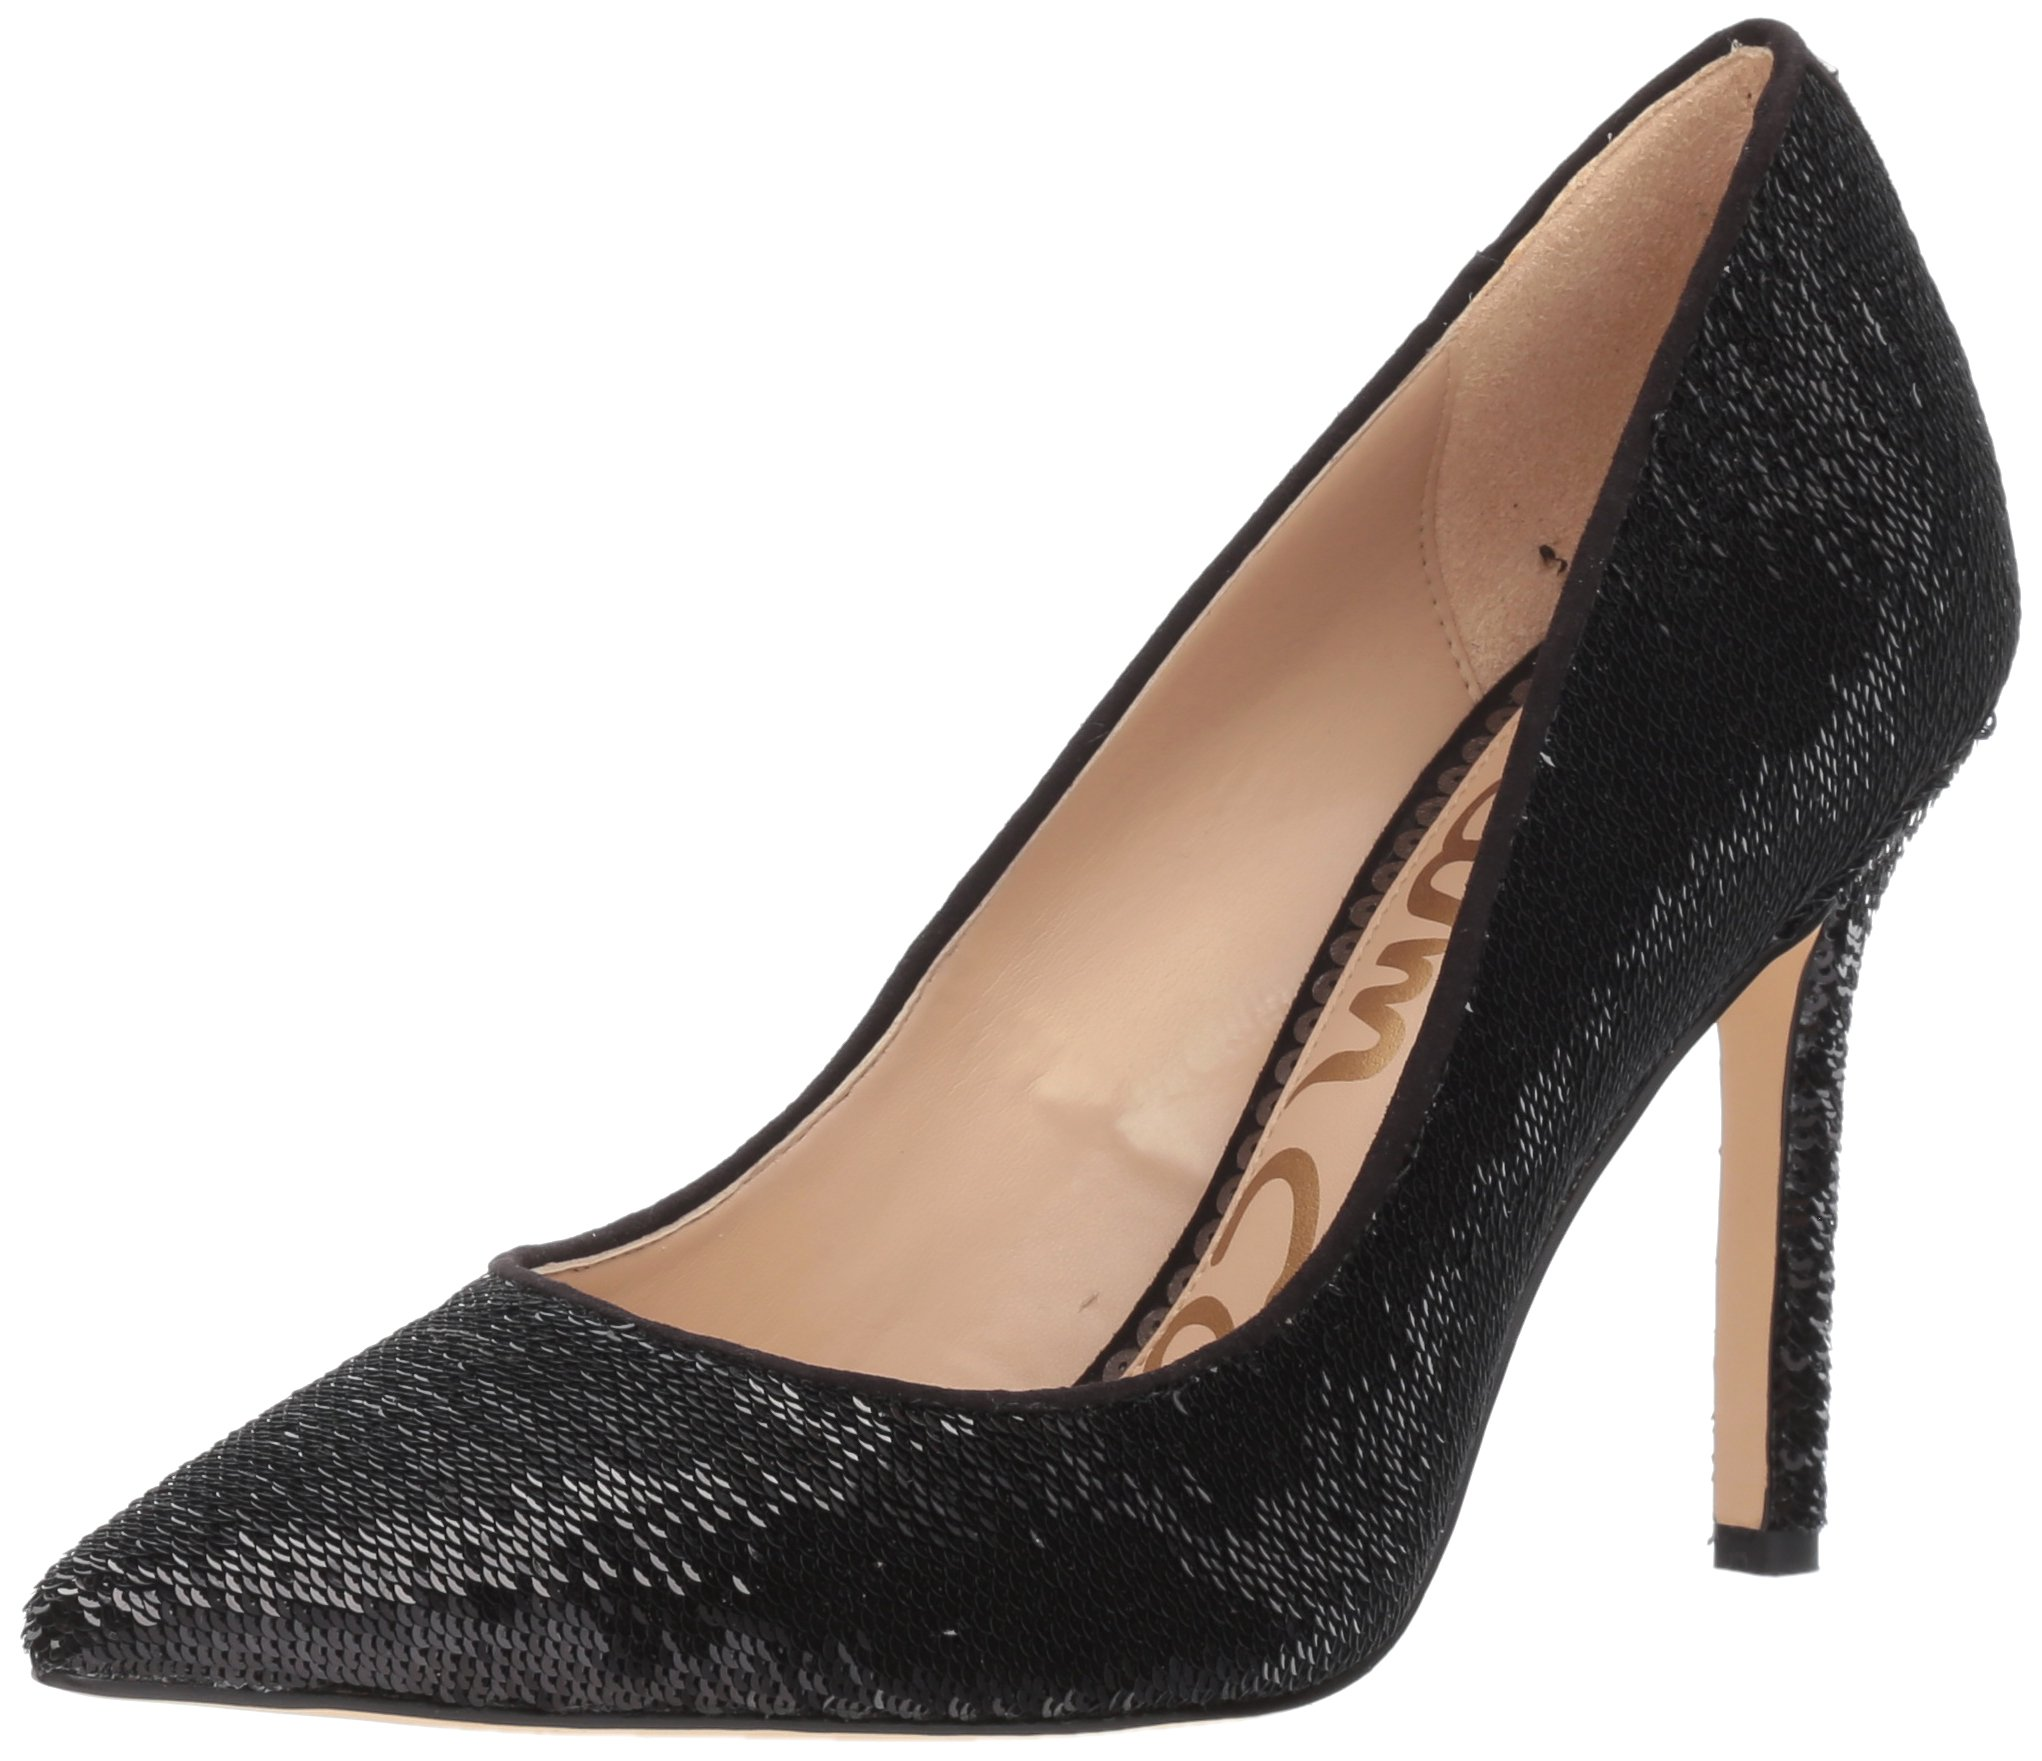 Sam Edelman Women's Hazel Pump, Black Sequin, 7.5 Medium US